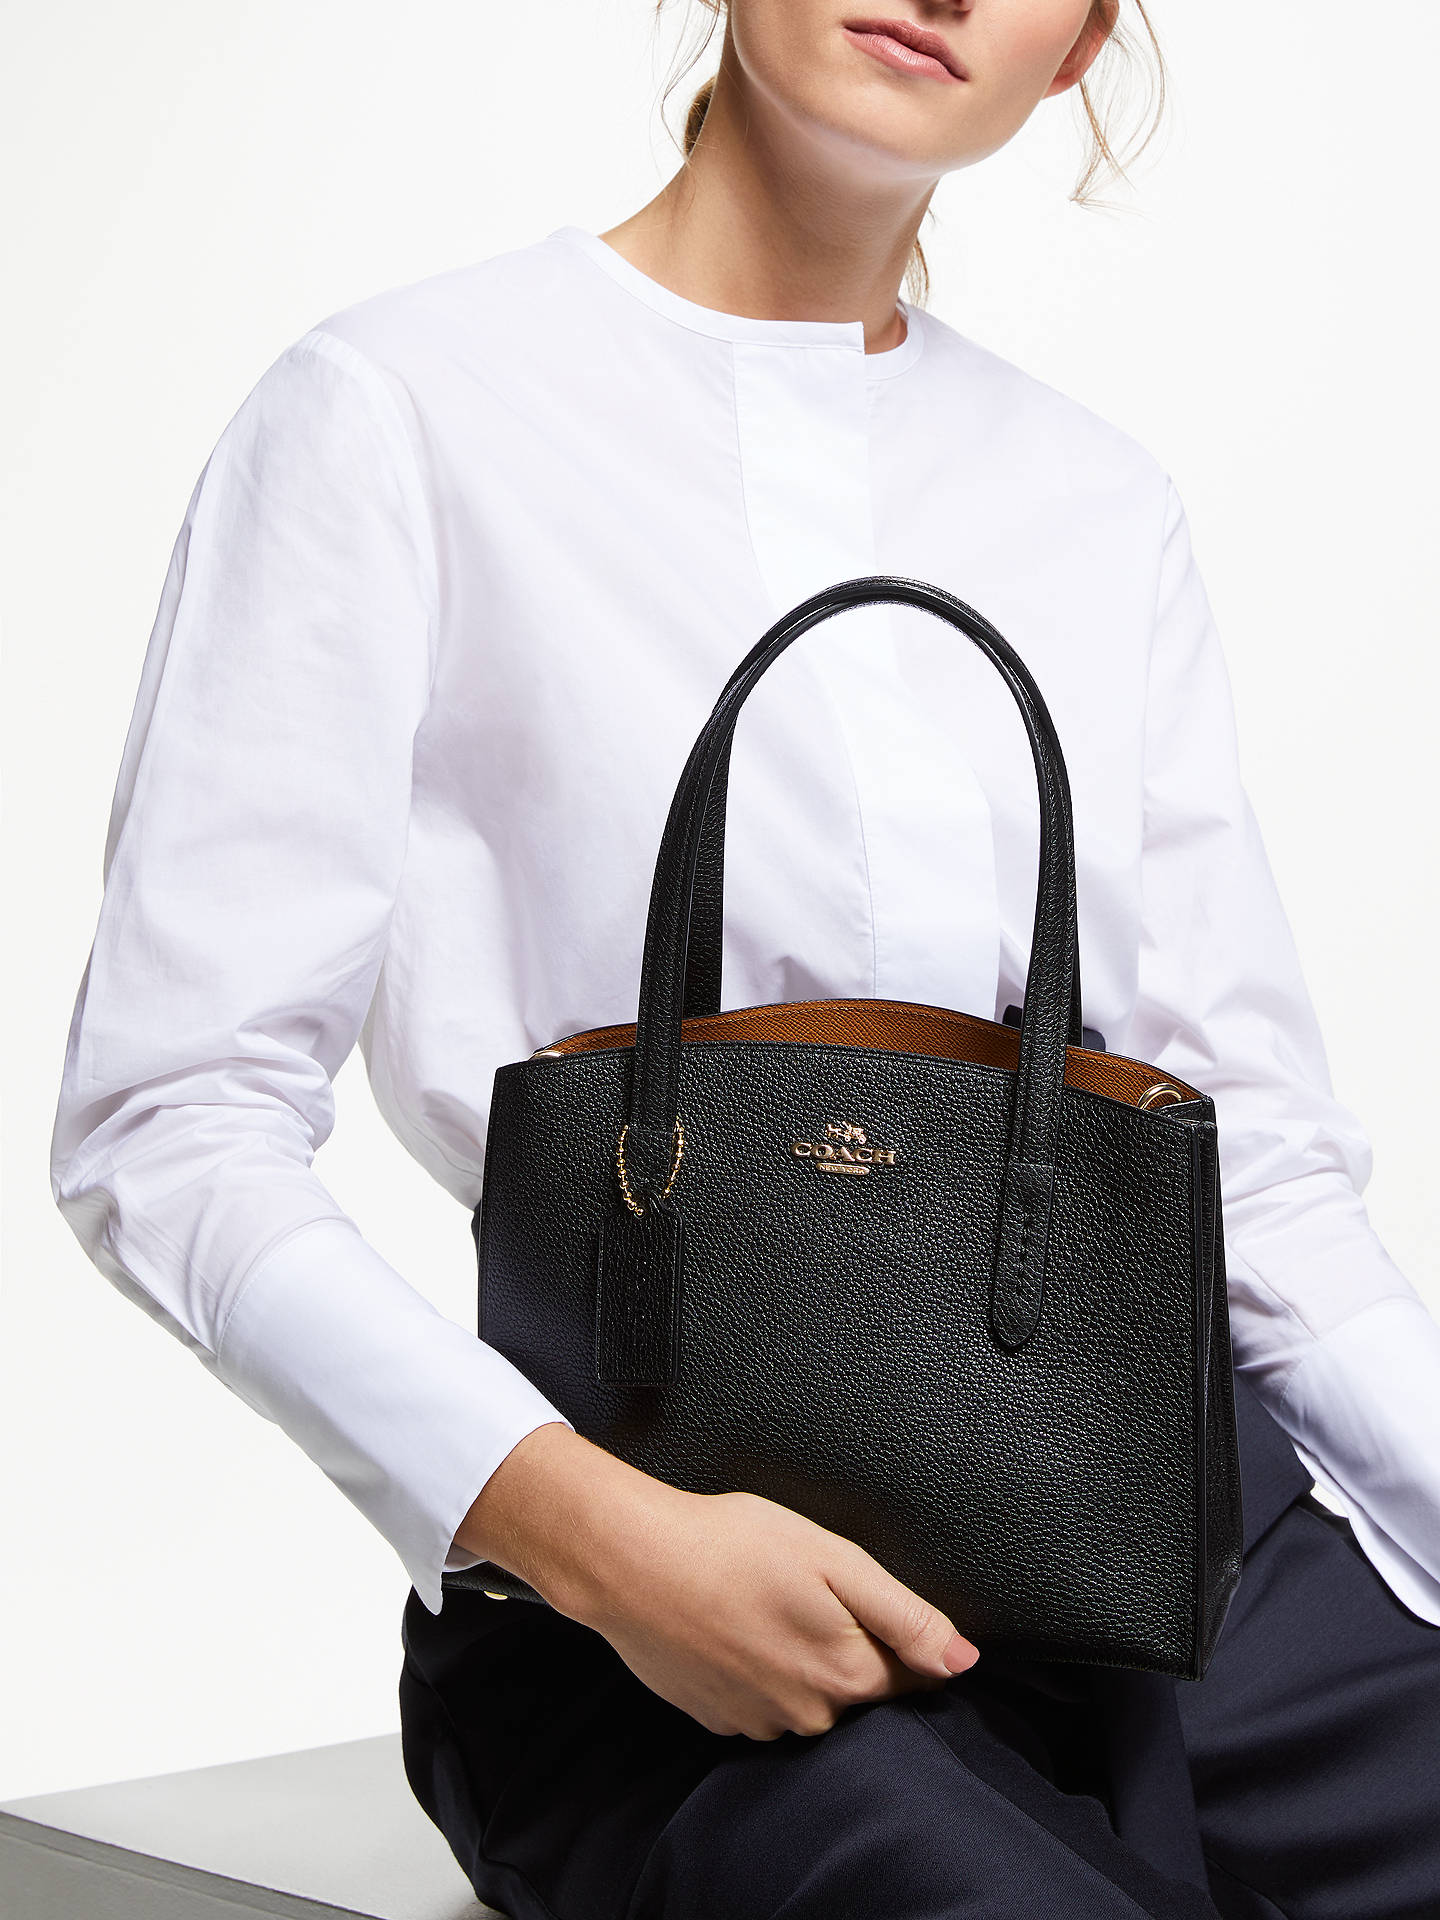 cfd3382a4e1f75 ... Buy Coach Charlie 28 Leather Carryall Tote Bag, Black Online at  johnlewis.com ...